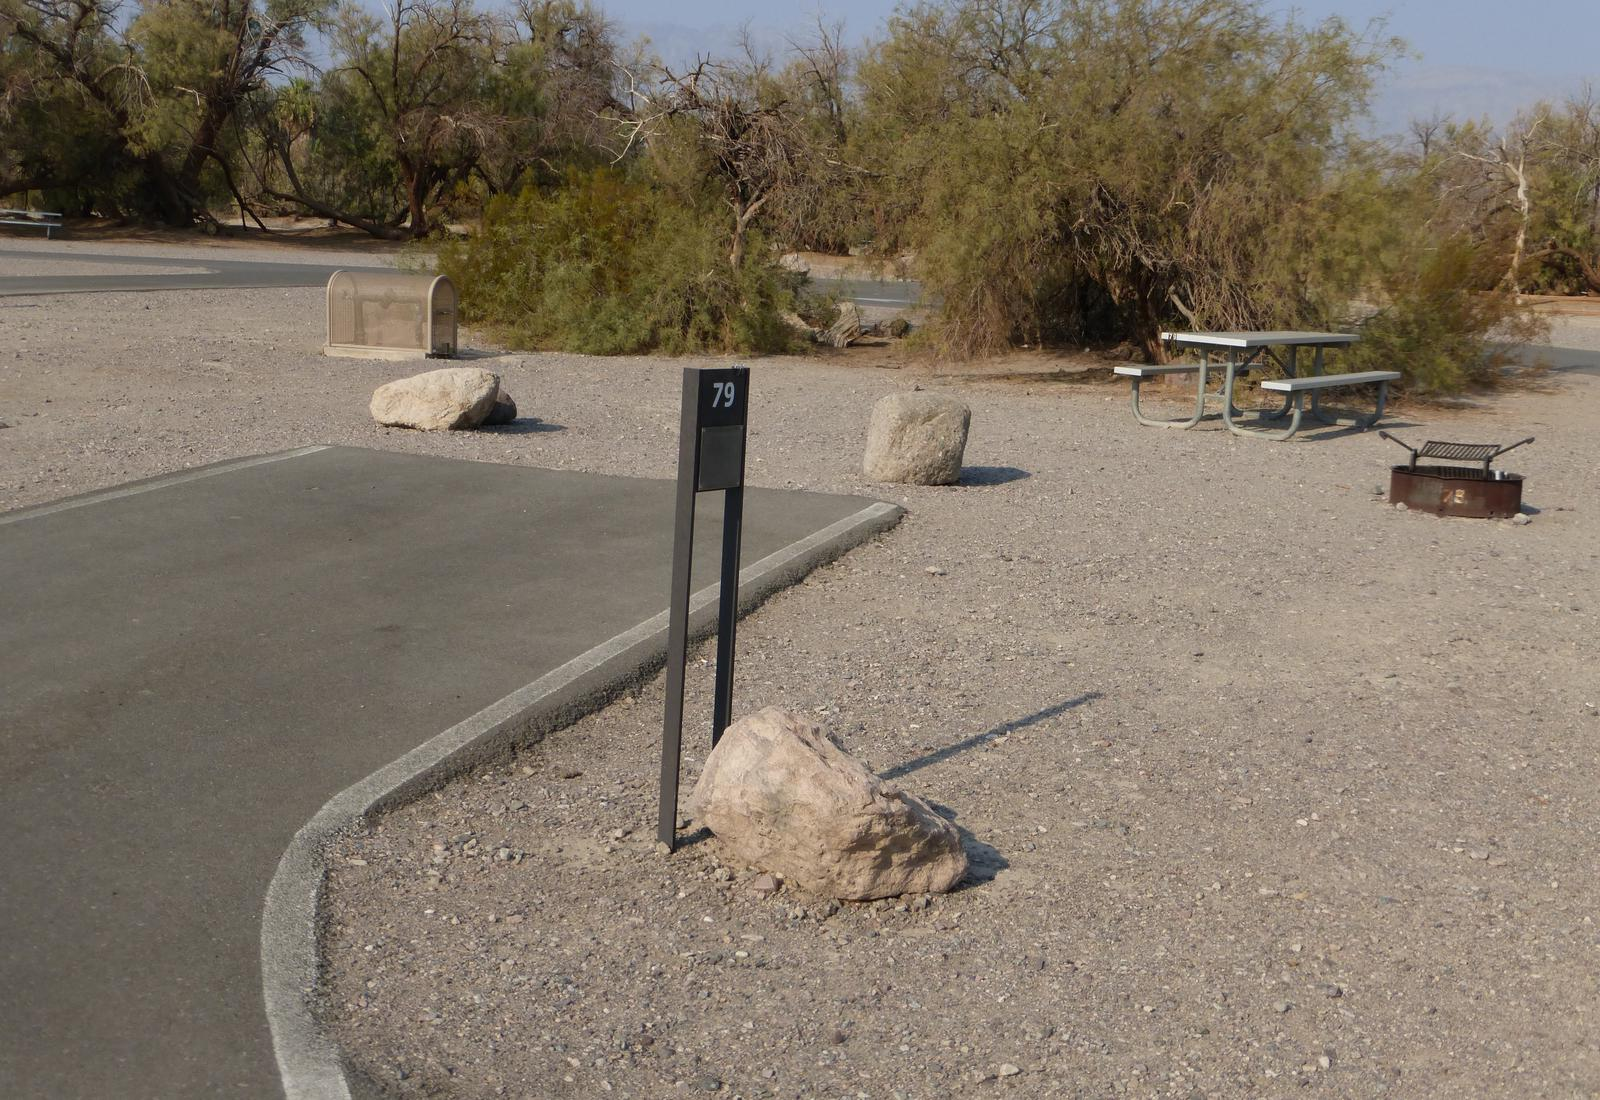 Furnace Creek Campground standard nonelectric site #79 with picnic table and fire ring.